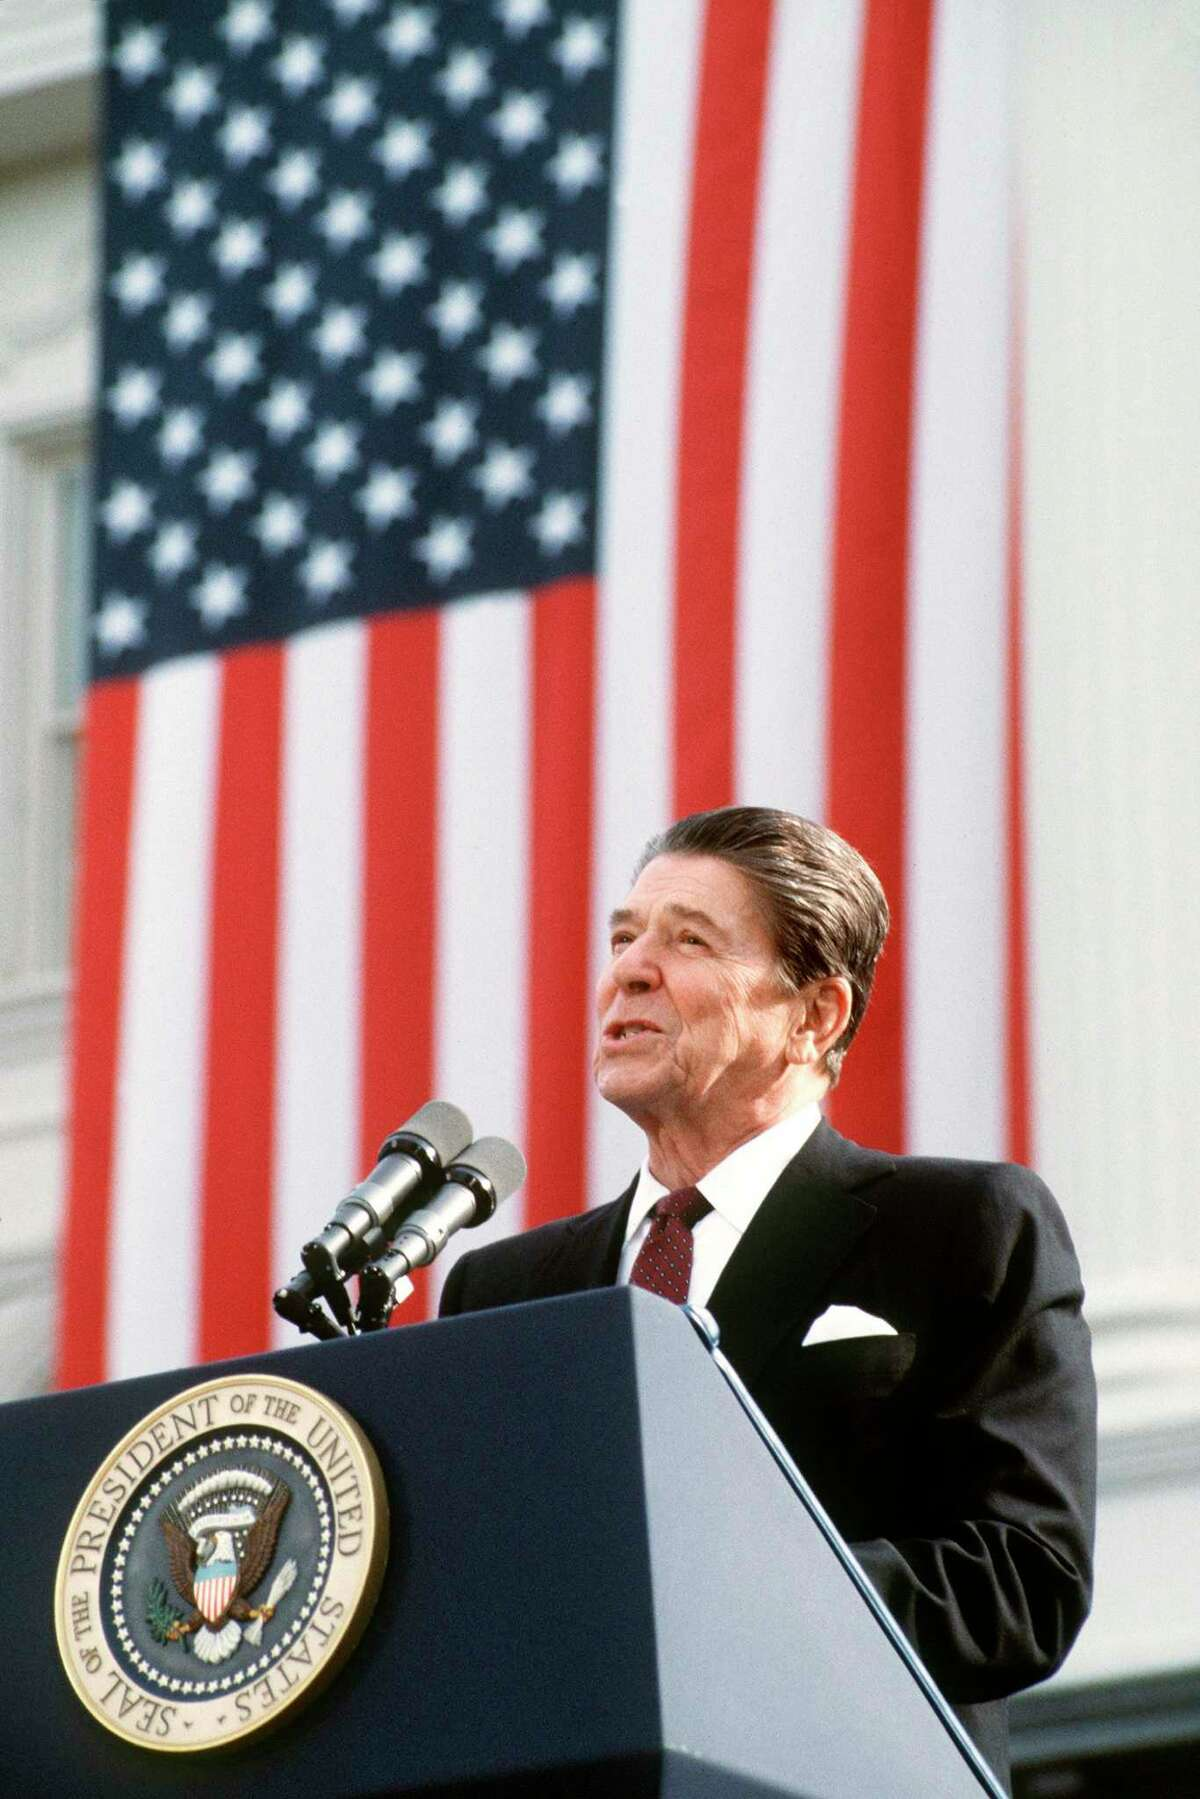 President and Republican presidential candidate Ronald Reagan addresses supporters at an electoral meeting in November 1984. (Don Rypka/AFP/Getty Images/TNS)